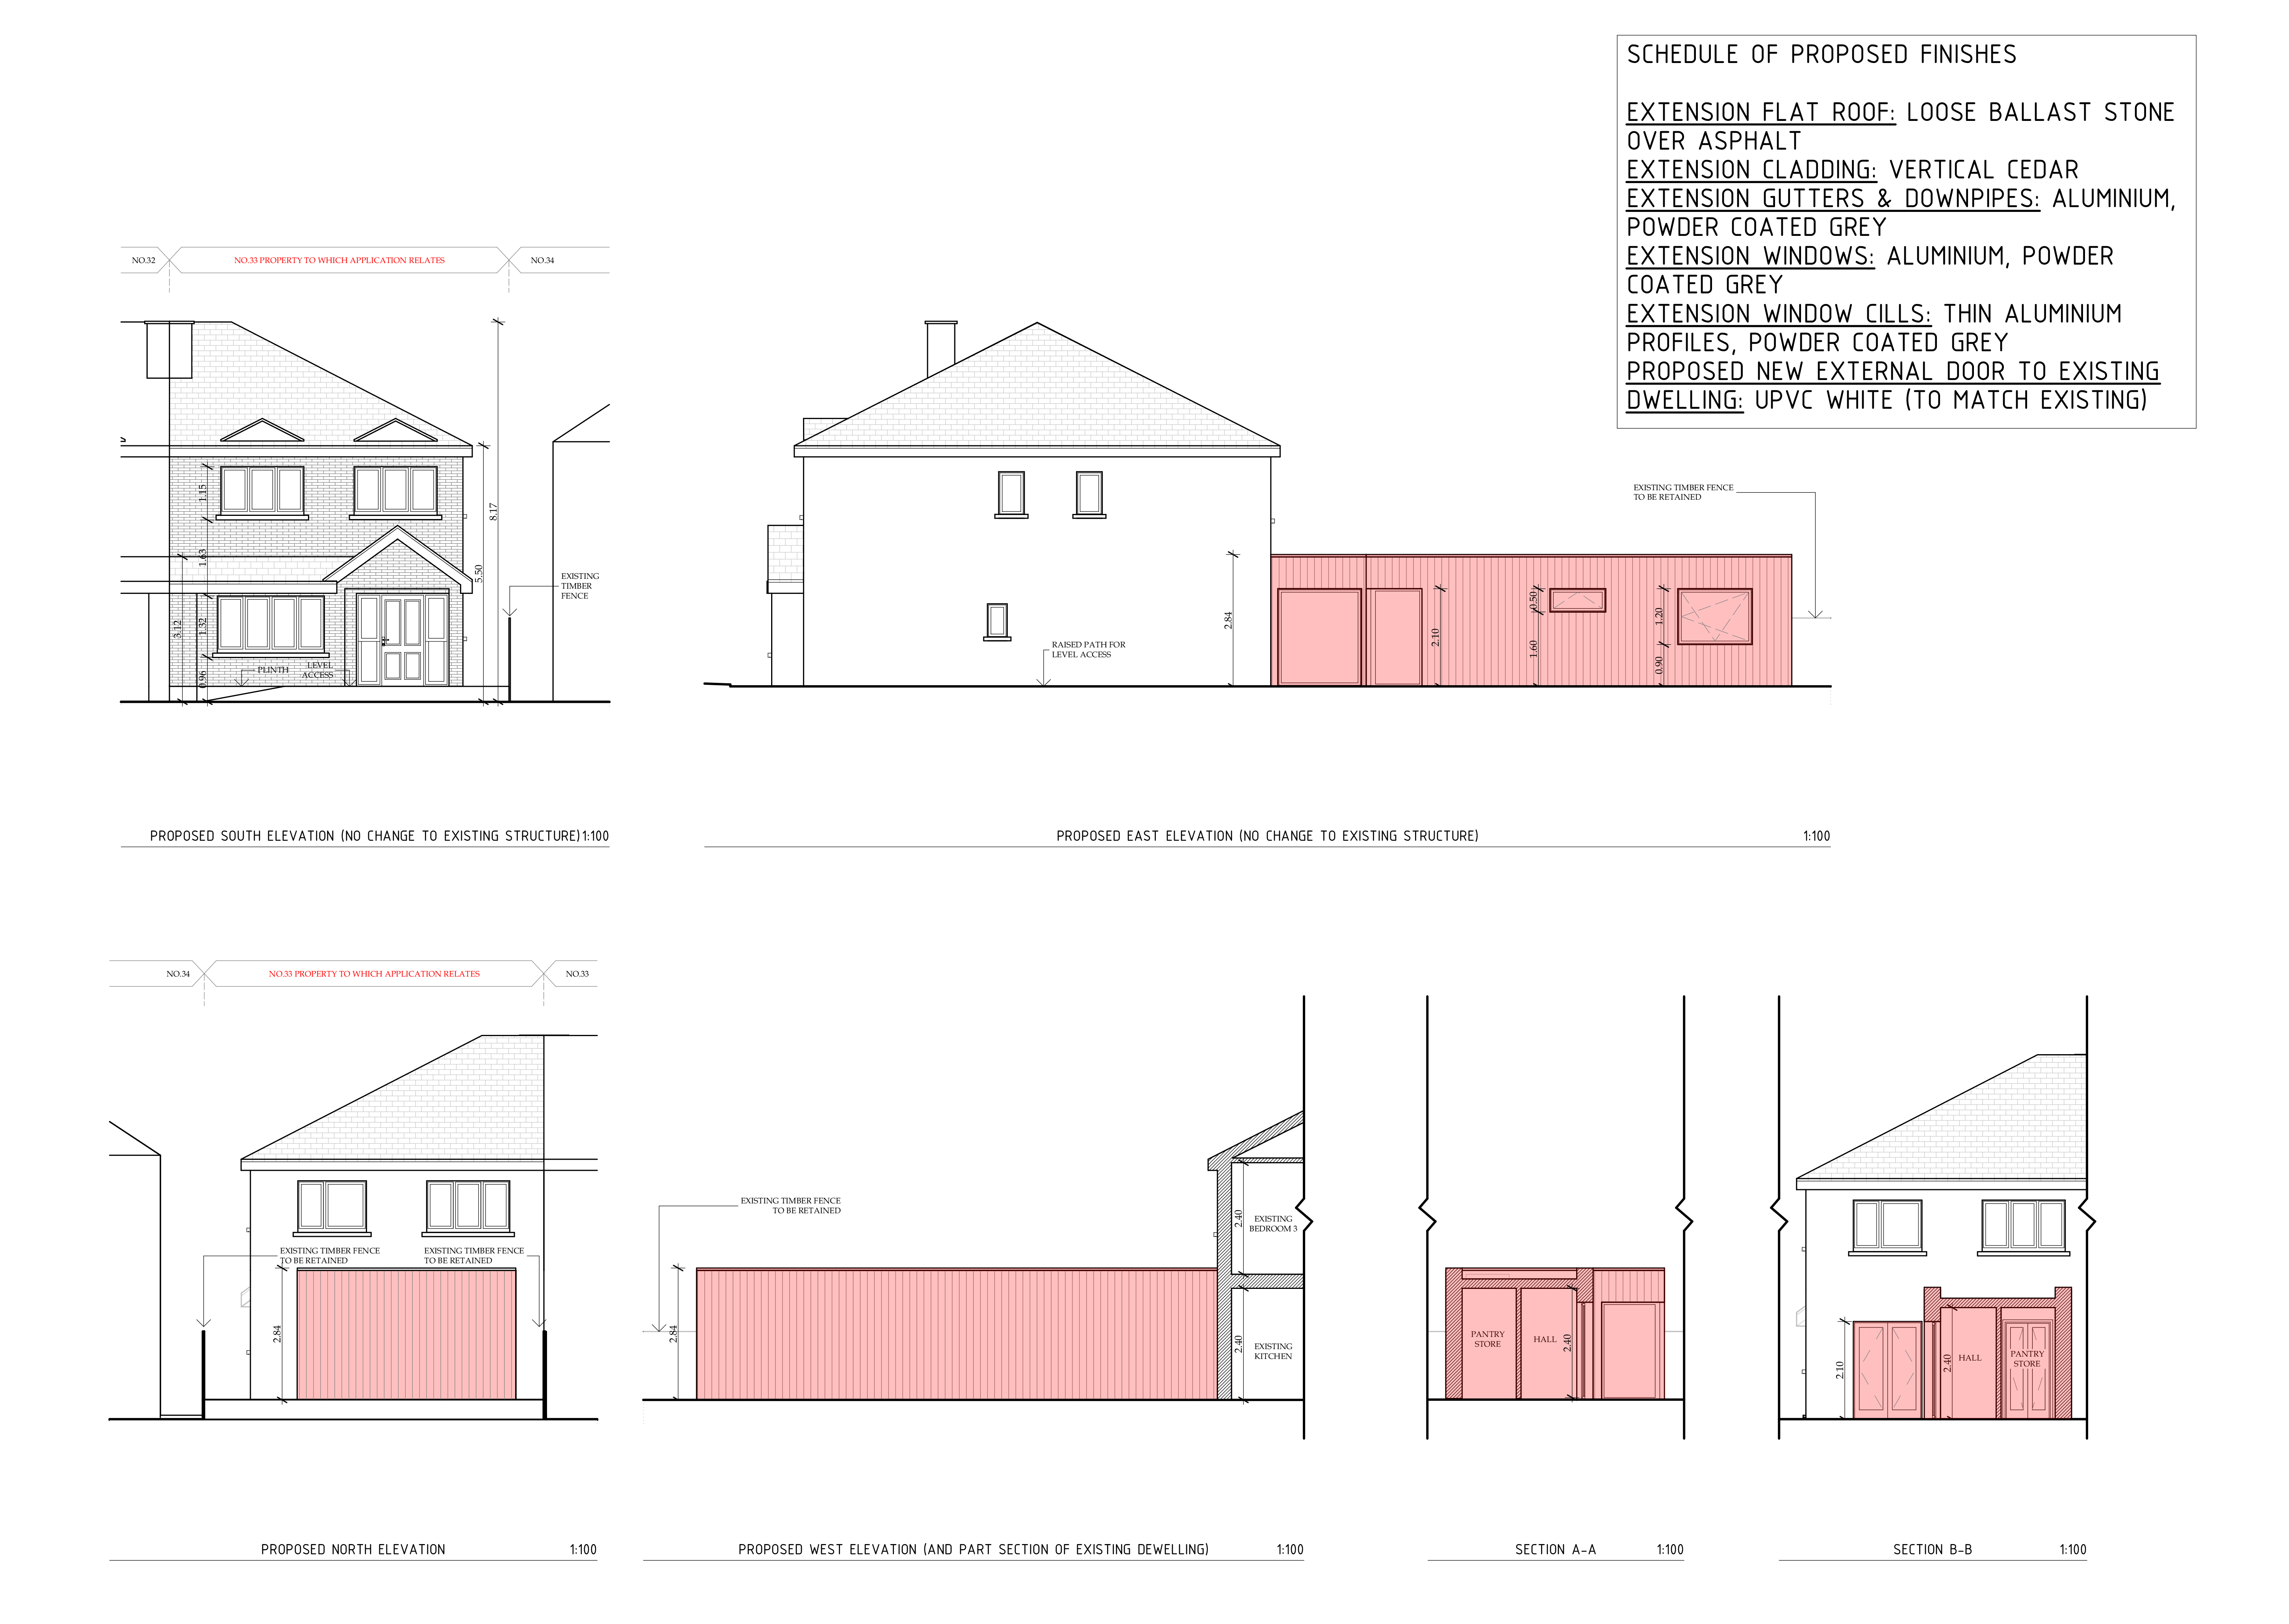 Proposed Elevations & Sections